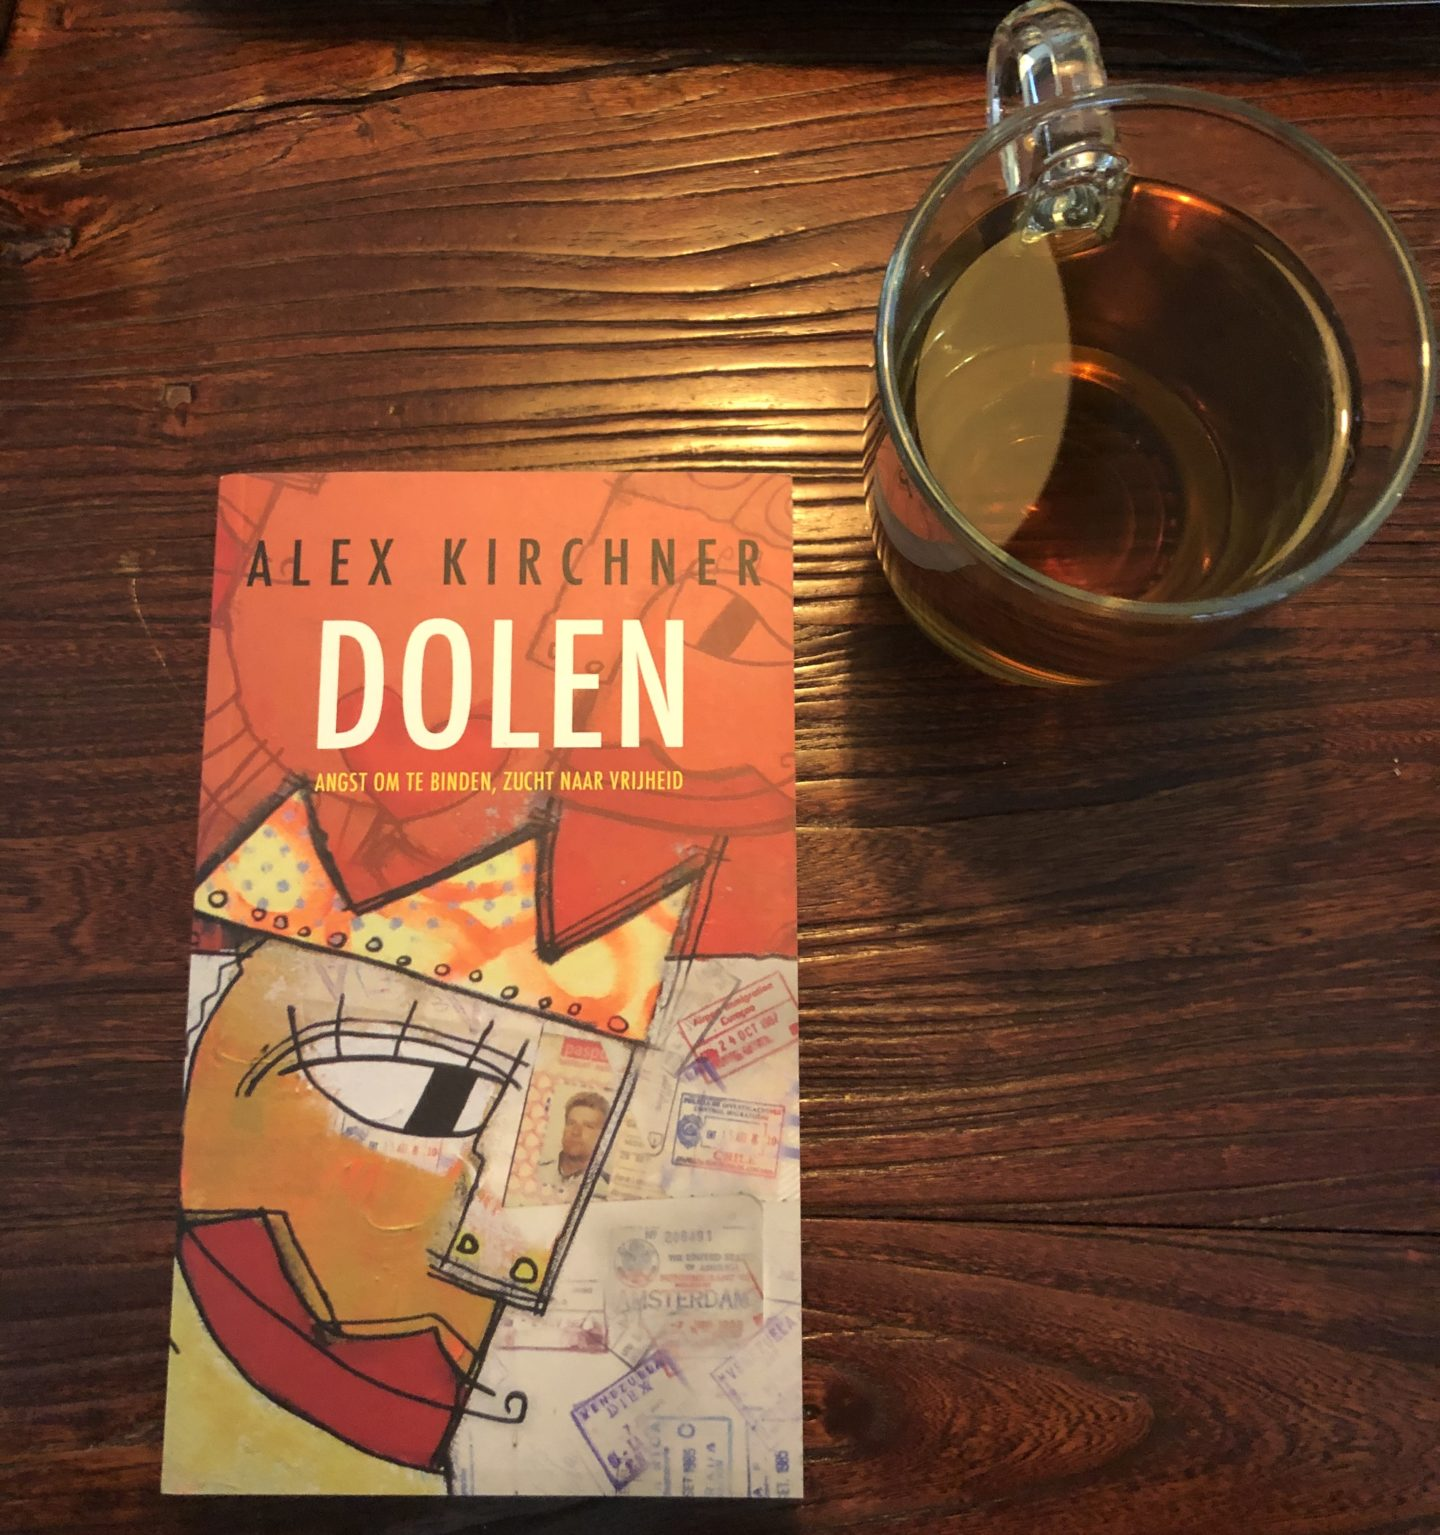 Book review (dutch): Dolen door Alex Kirchner